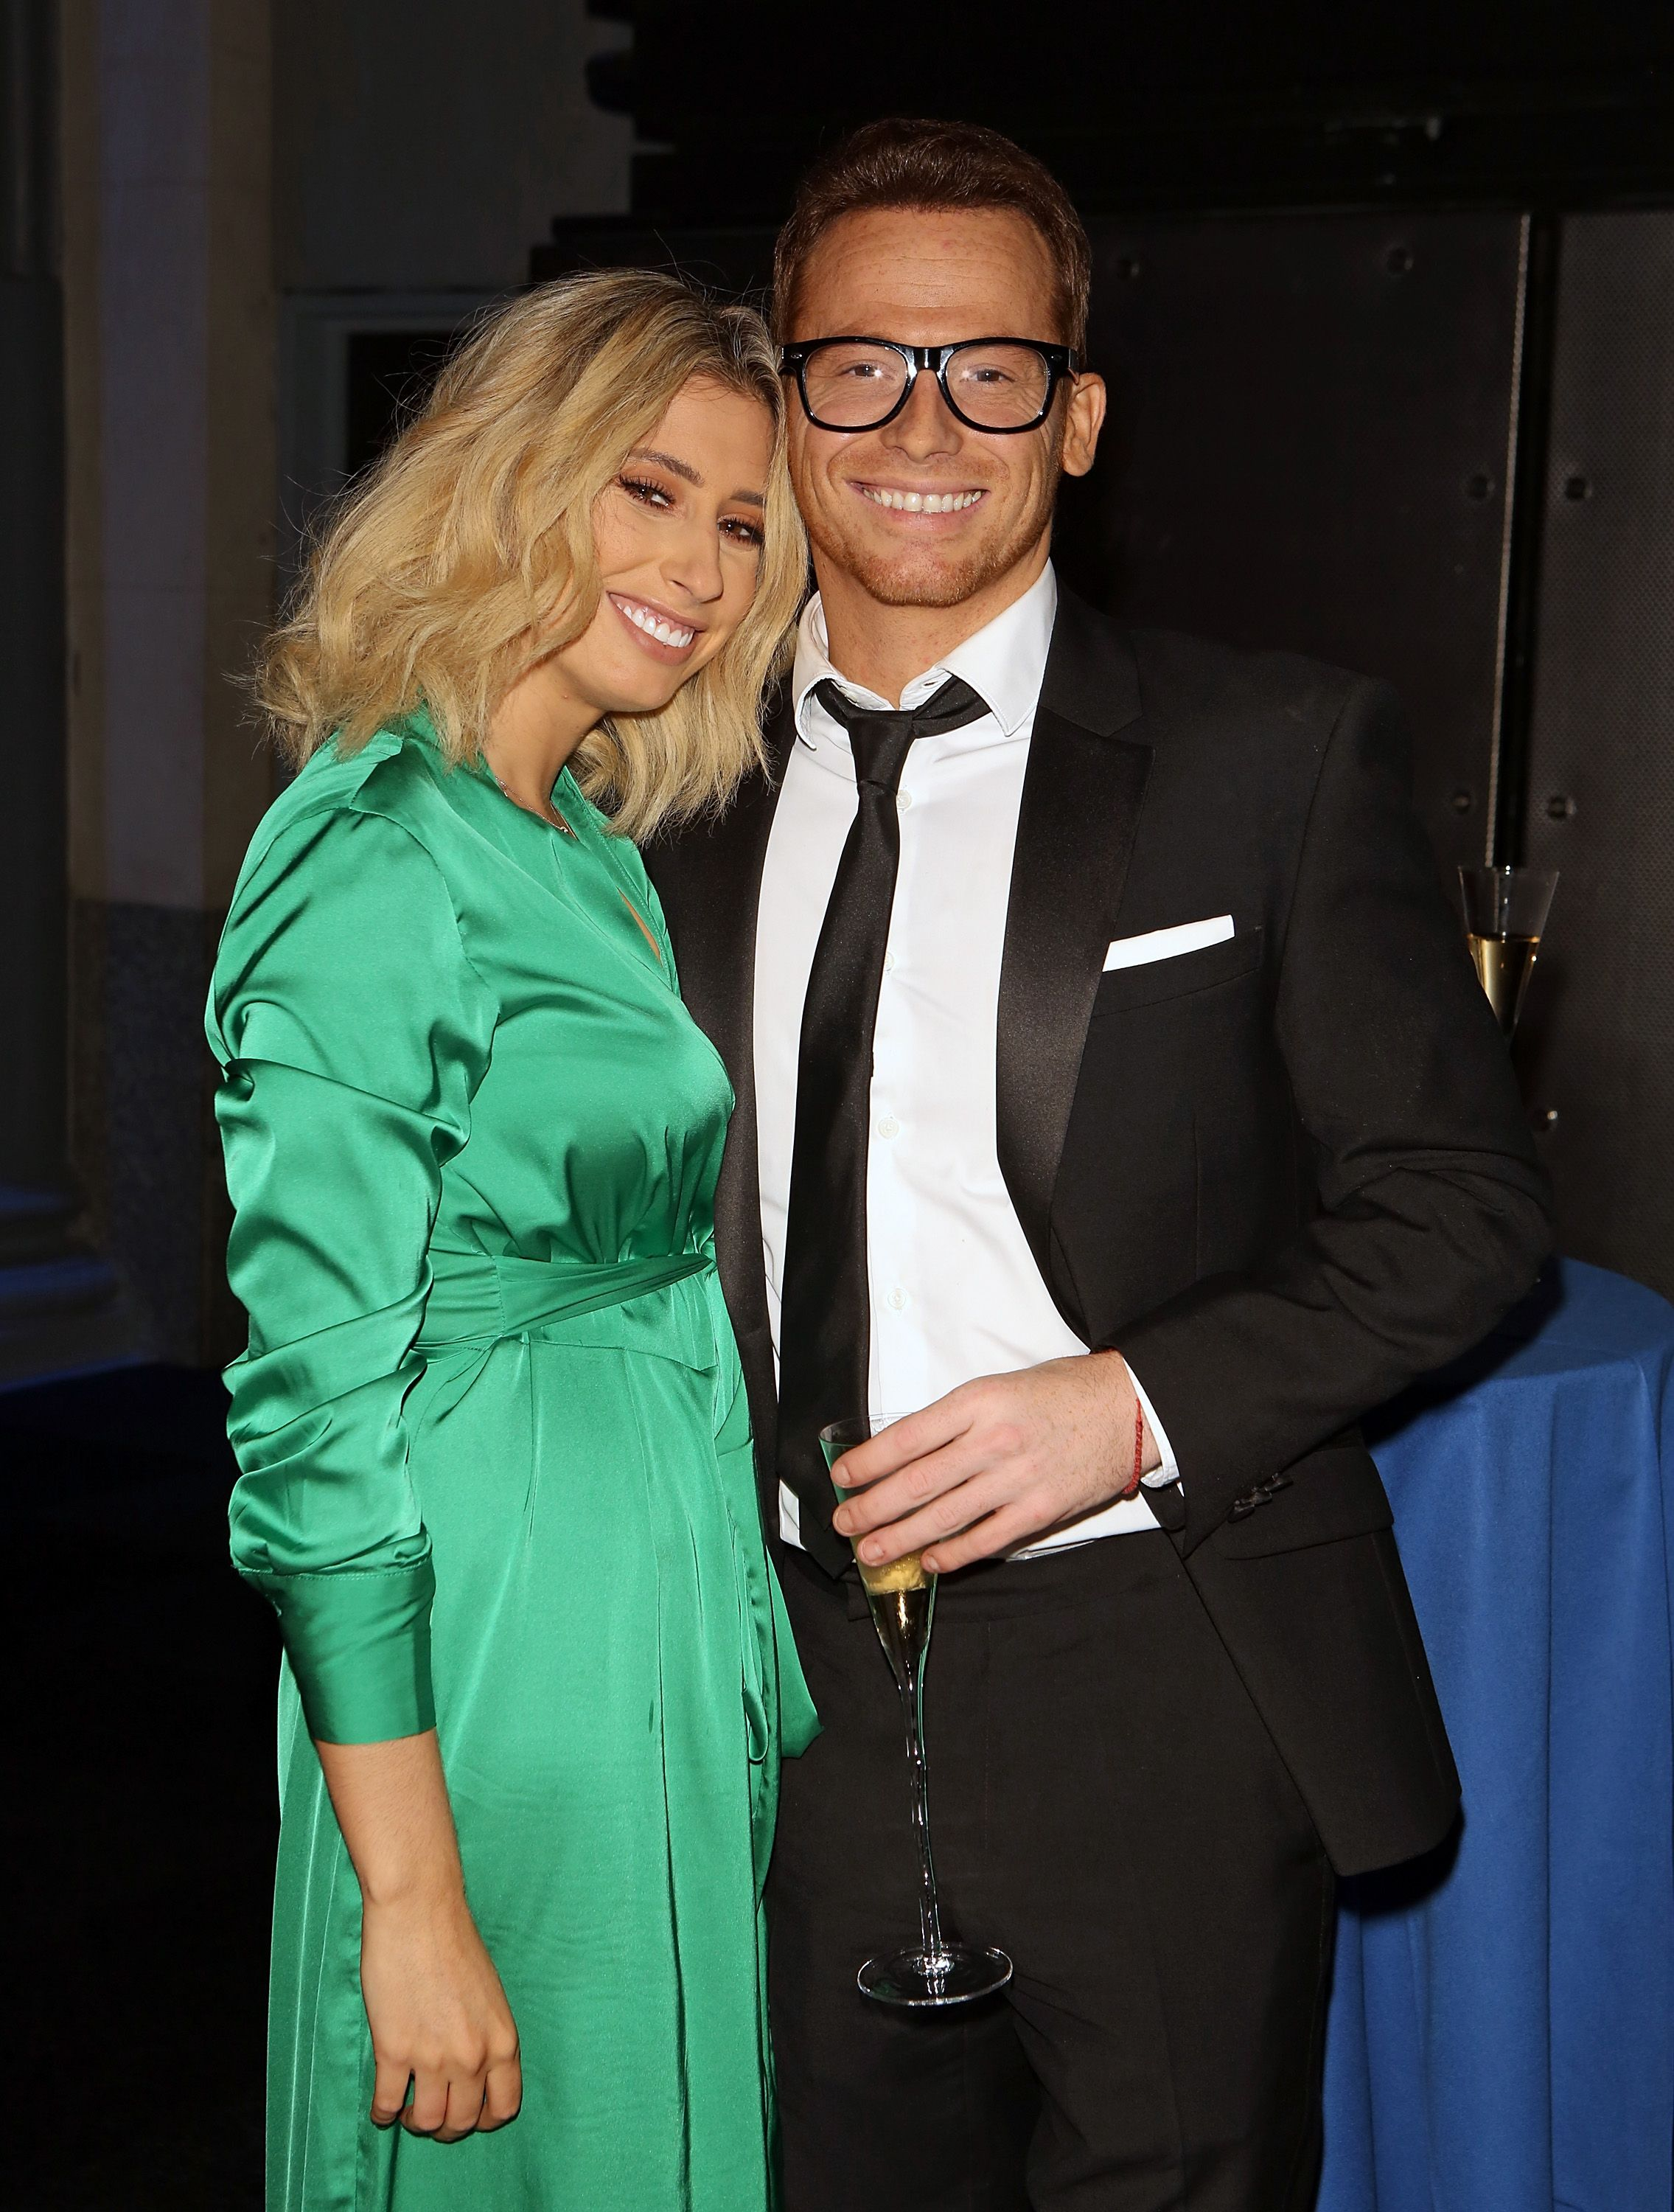 71ae280ba76db joe-swash-and-stacey-solomon -attend-the-britains-got-talent-news-photo-855215926-1544030276.jpg